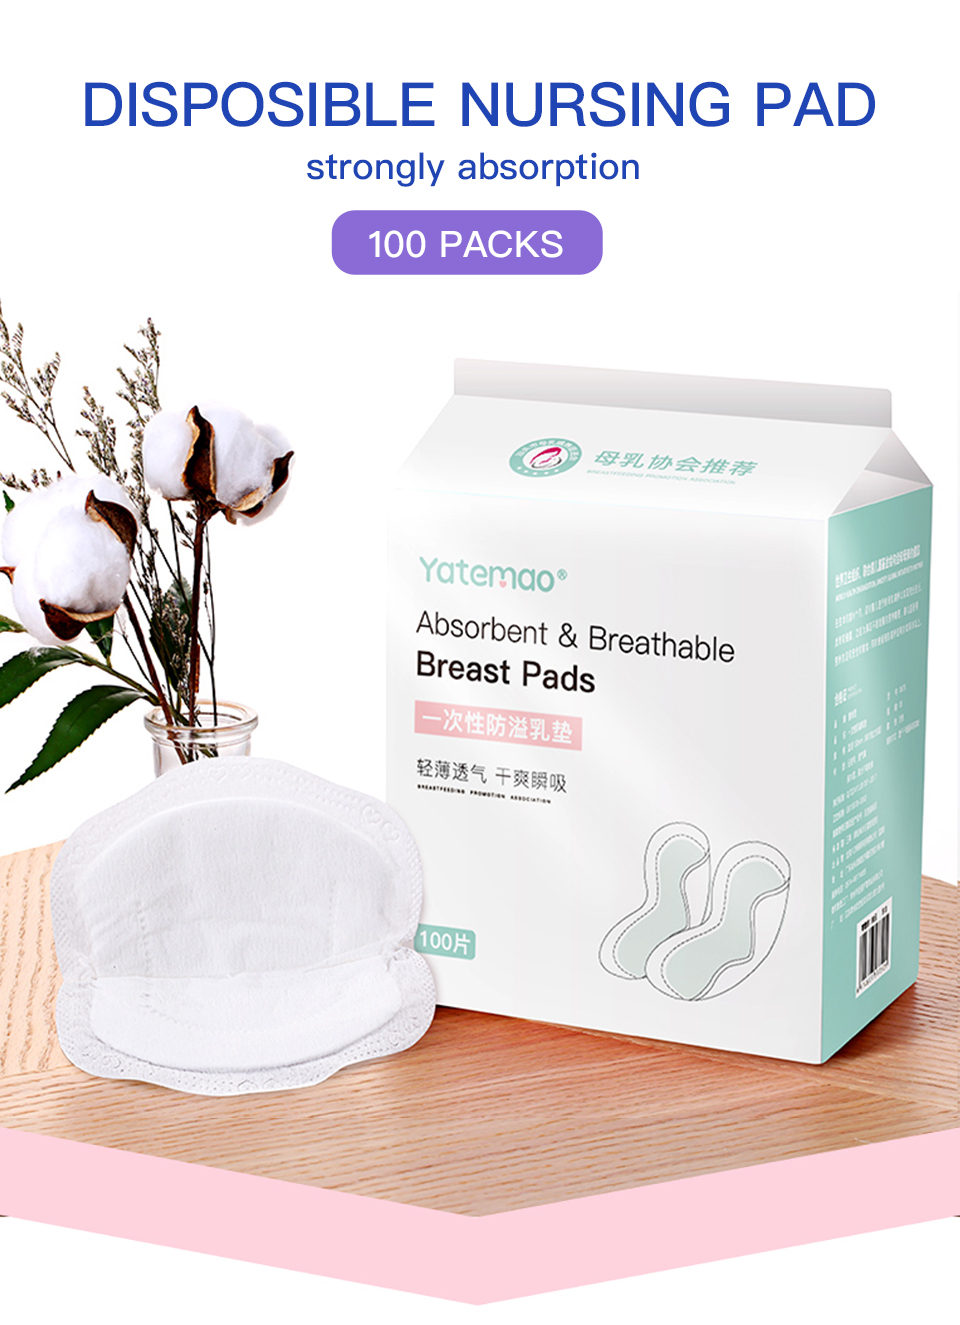 YATWEMAO 100PCS/lot Wholesale Cotton Disposable Breast Nursing Pads Breathable Super Absorbency Maternity Pads 1